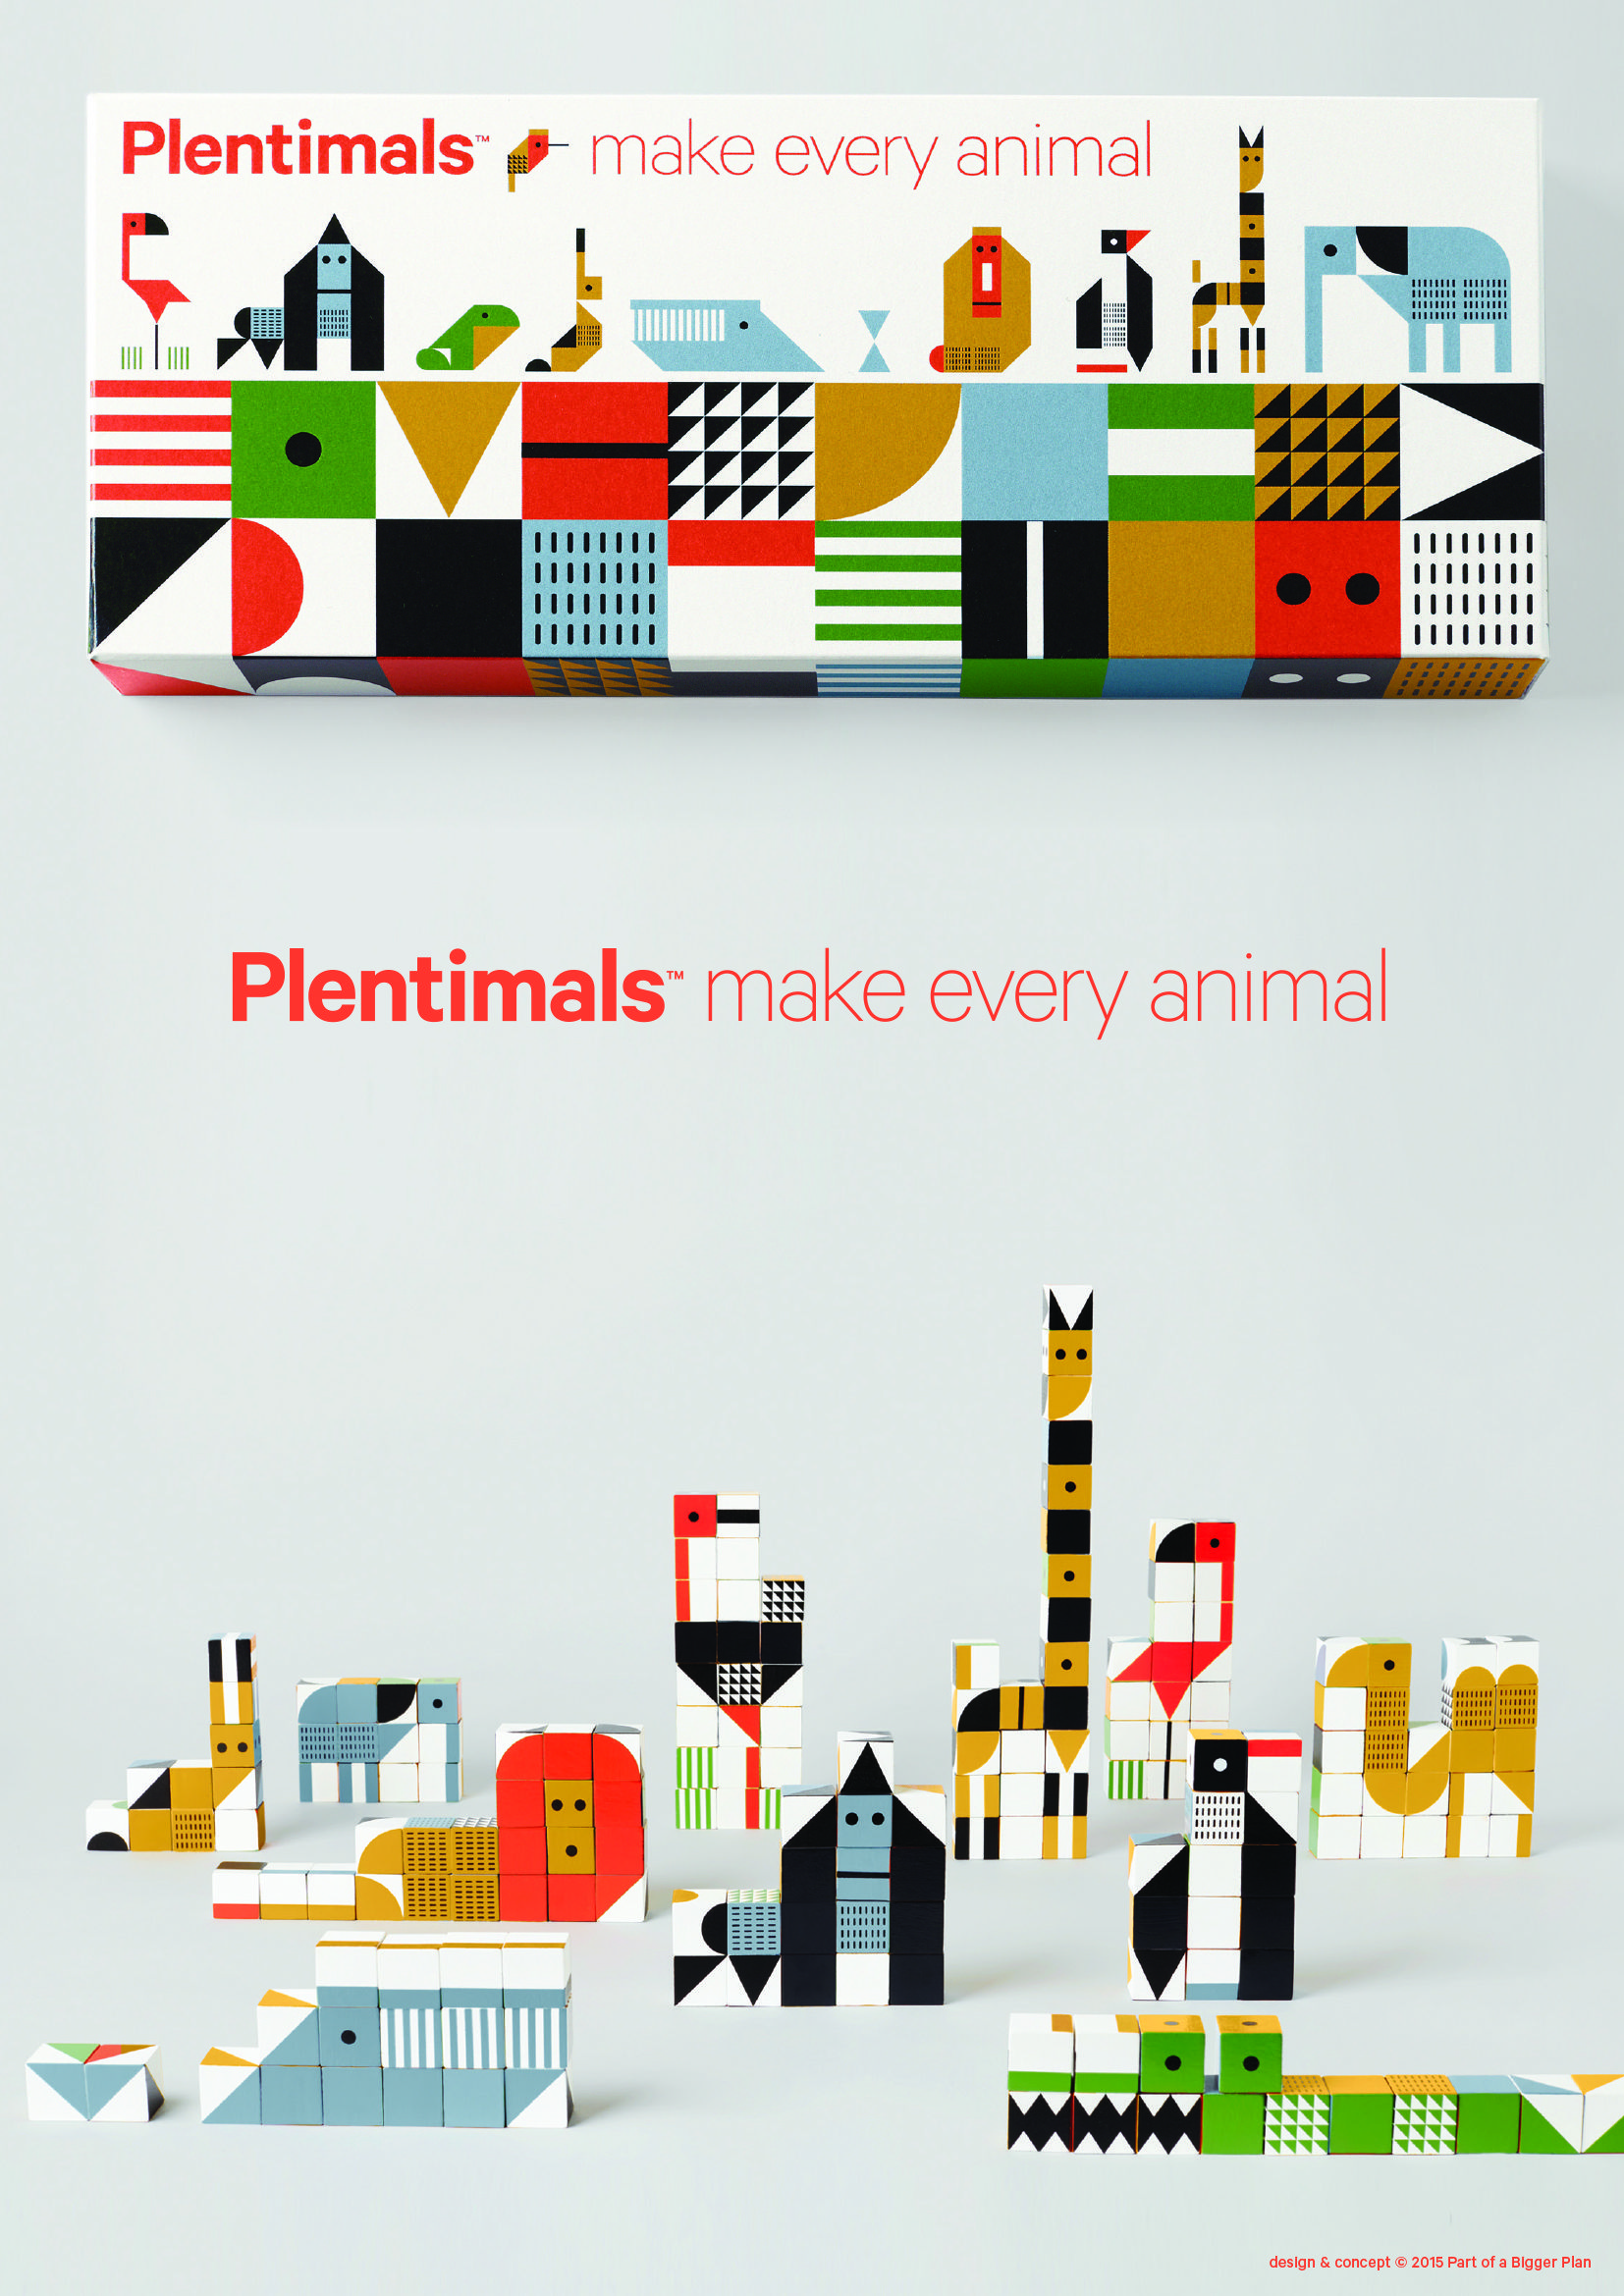 Make every animal Plentimals Illustrations and posters